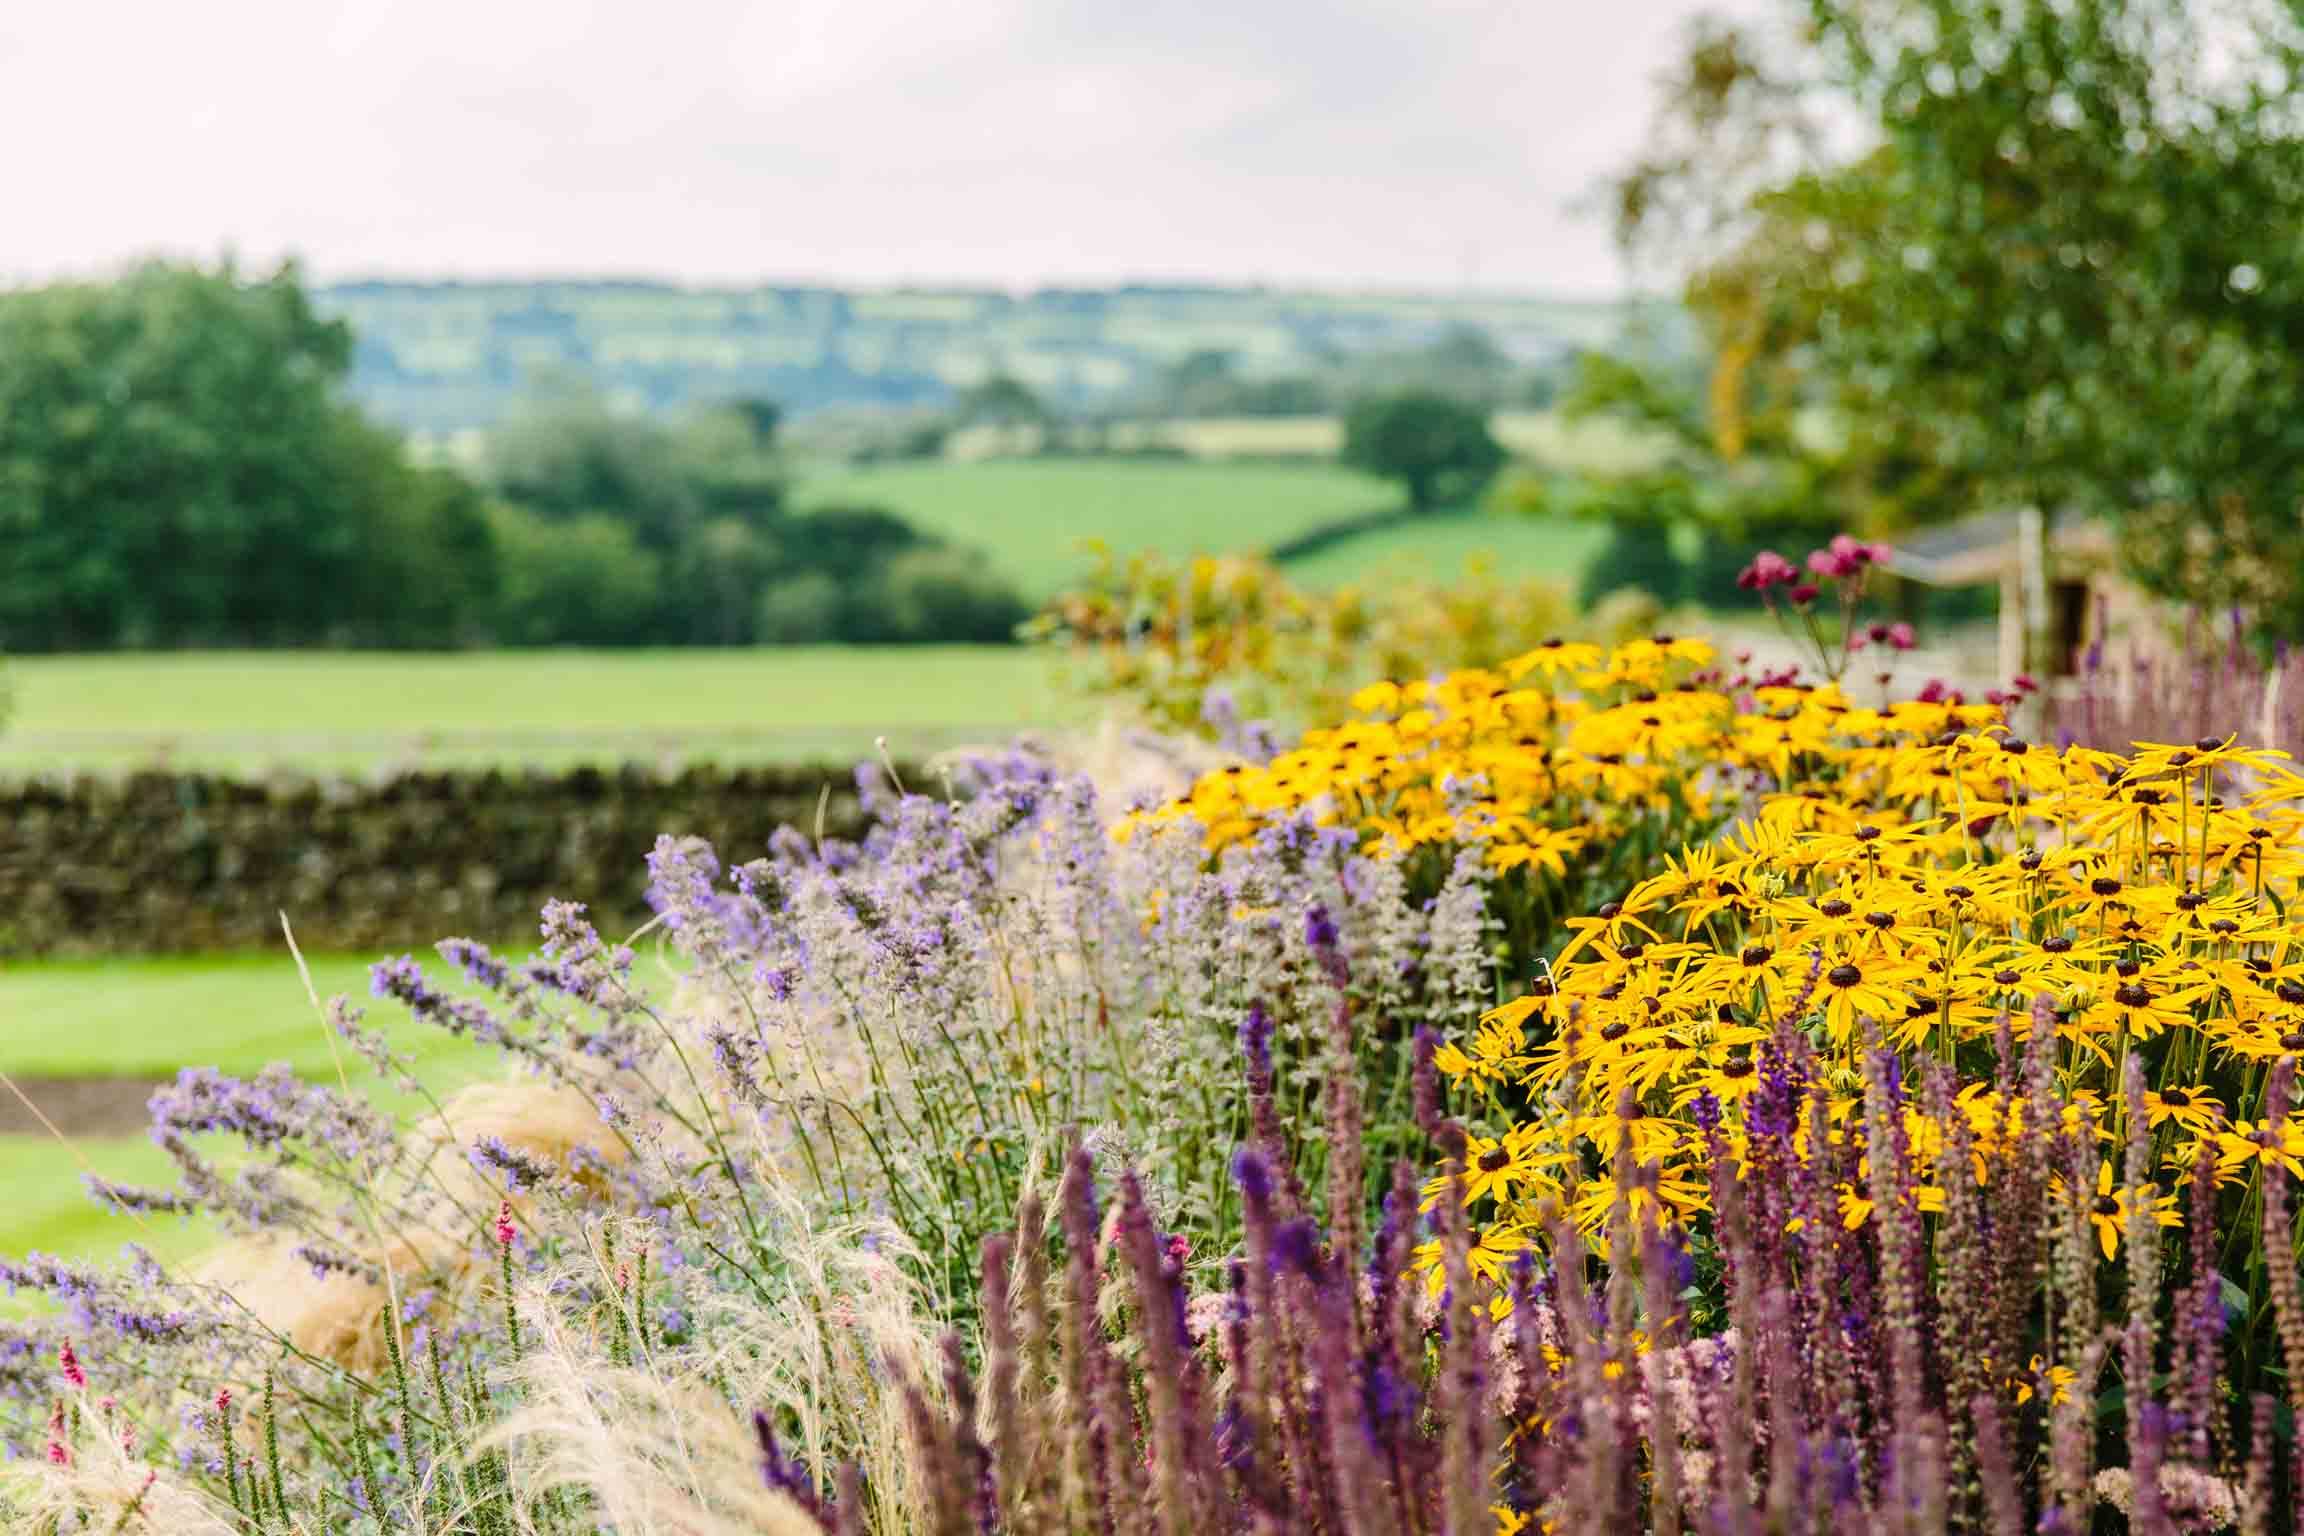 Country Garden-bestall--and-co-yorkshire-modern-planting-dutch-planting Terraced Garden bestall and co Beautiful Planting Planting Design Dry Stone Wall English country classic garden Kat Weatherill